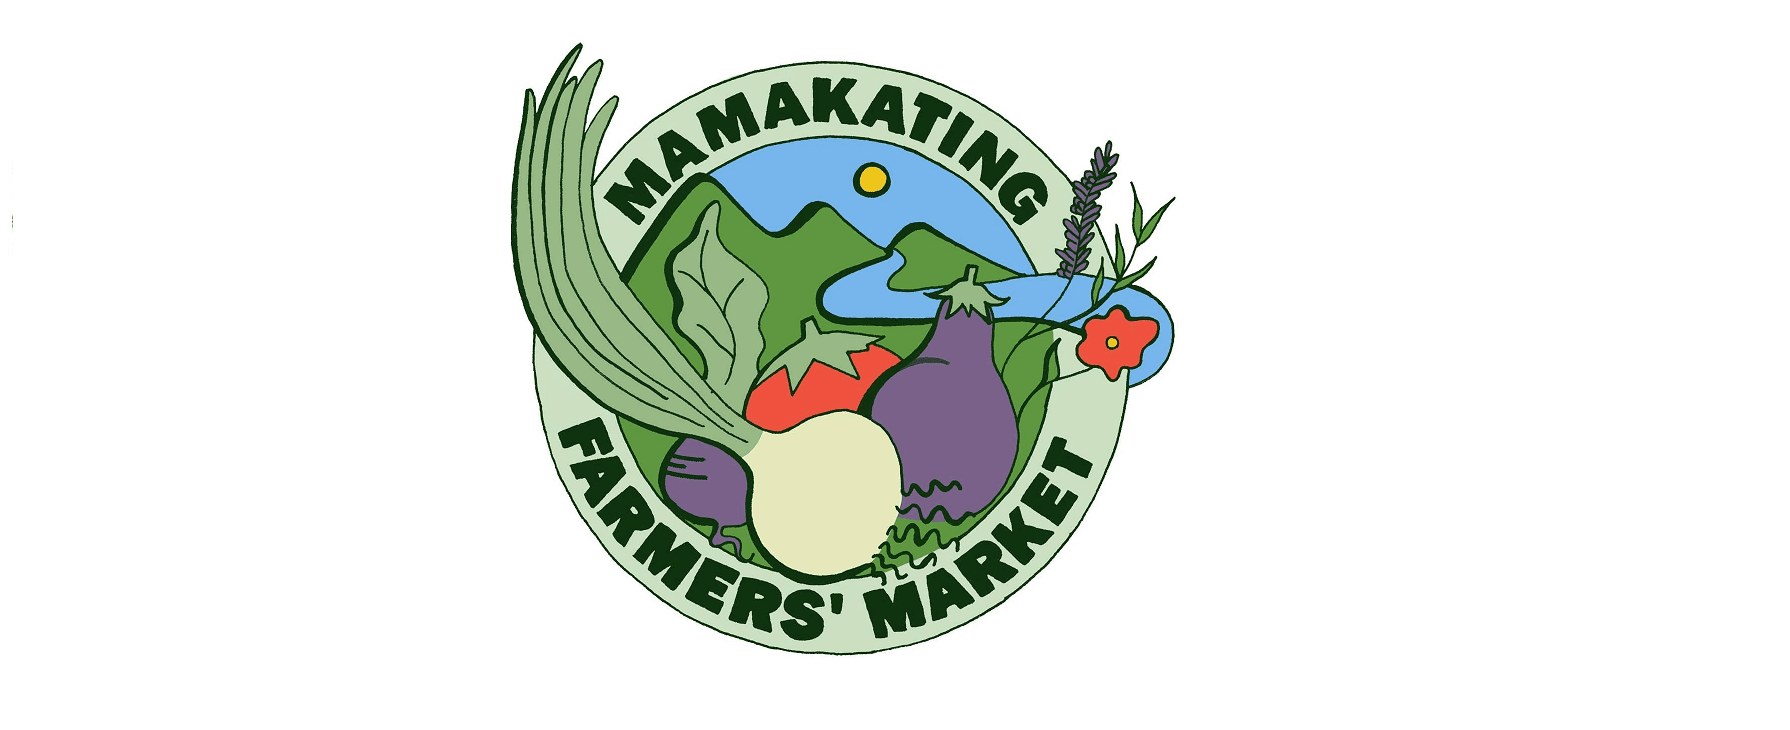 Mamakating Farmers Market